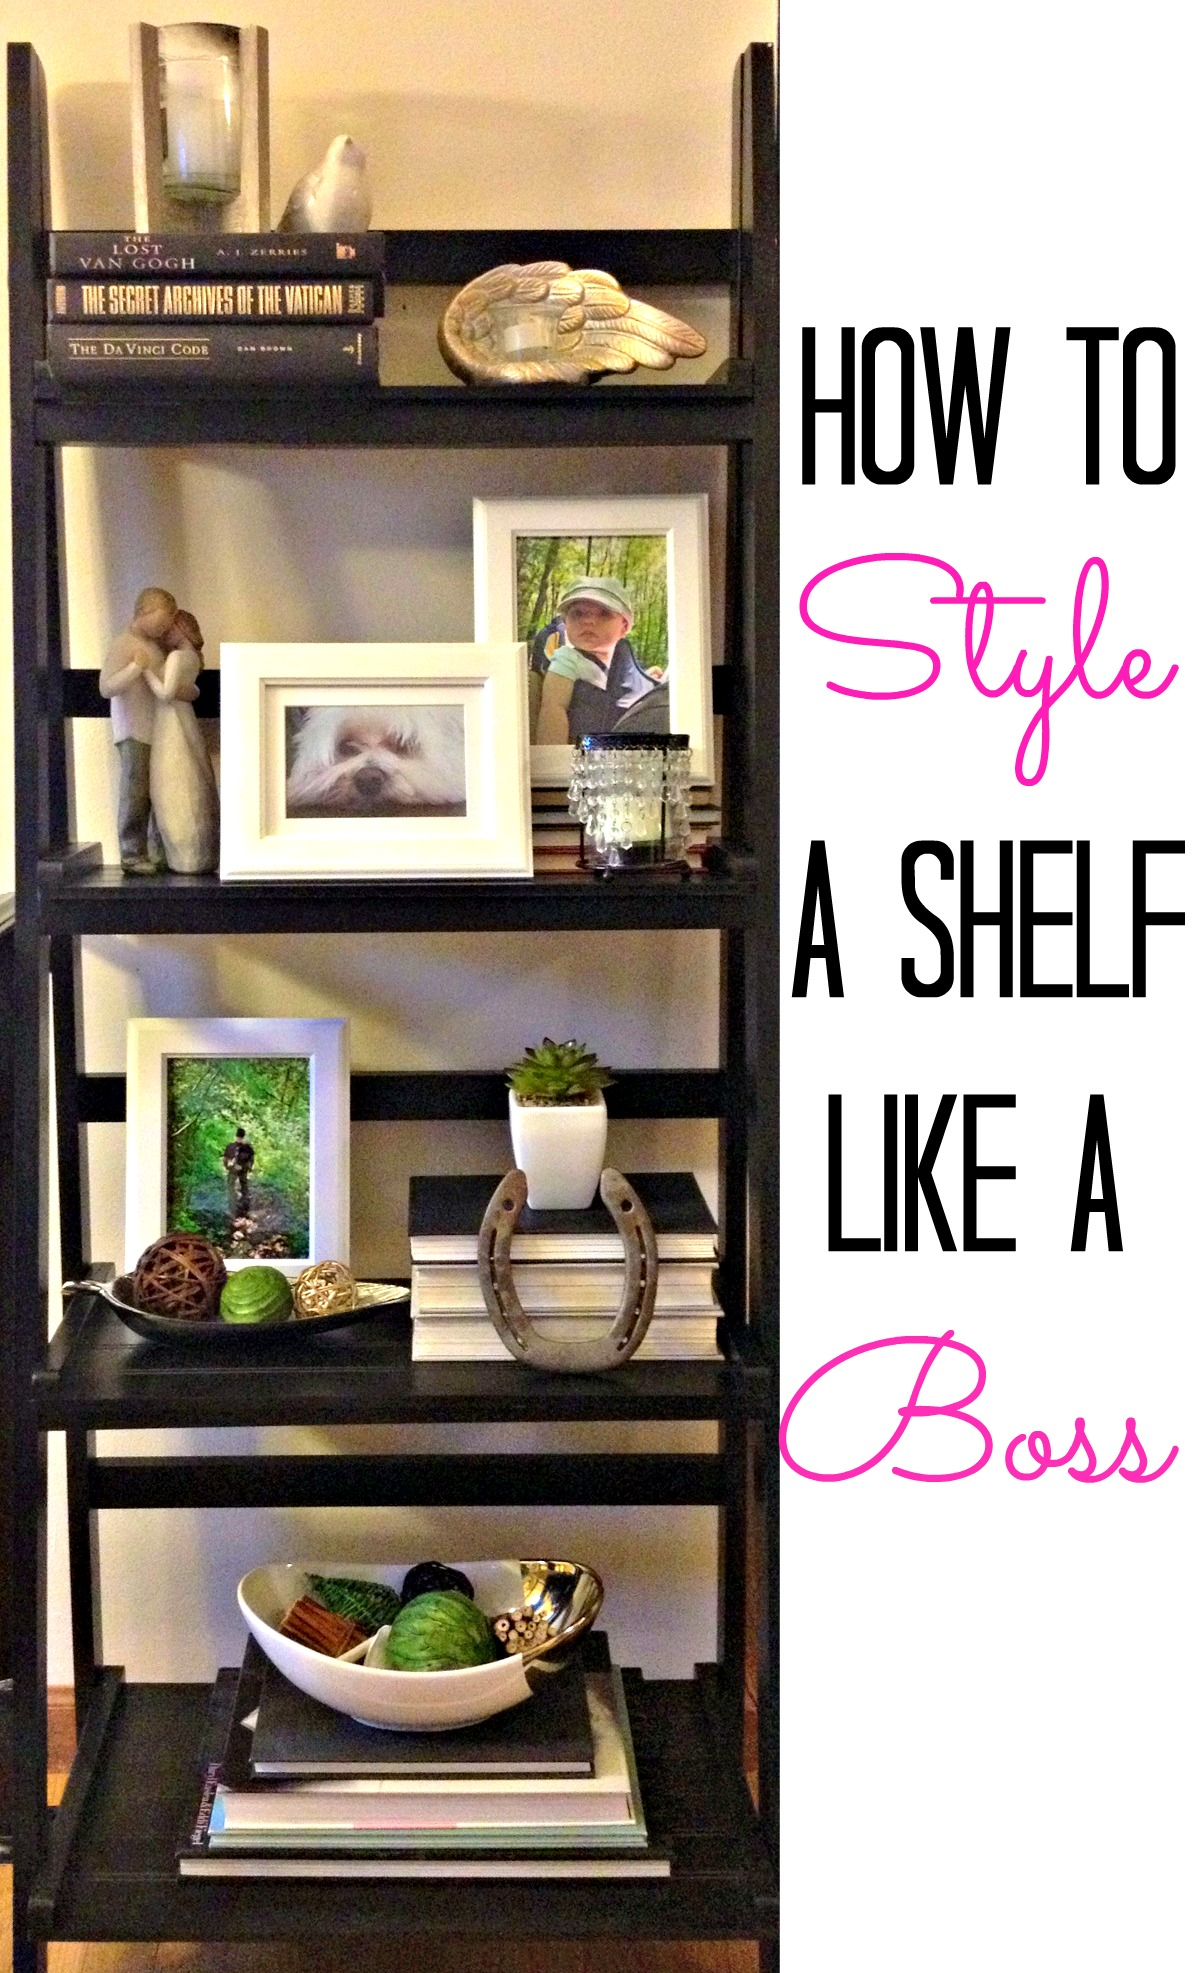 How to a style shelf like a boss